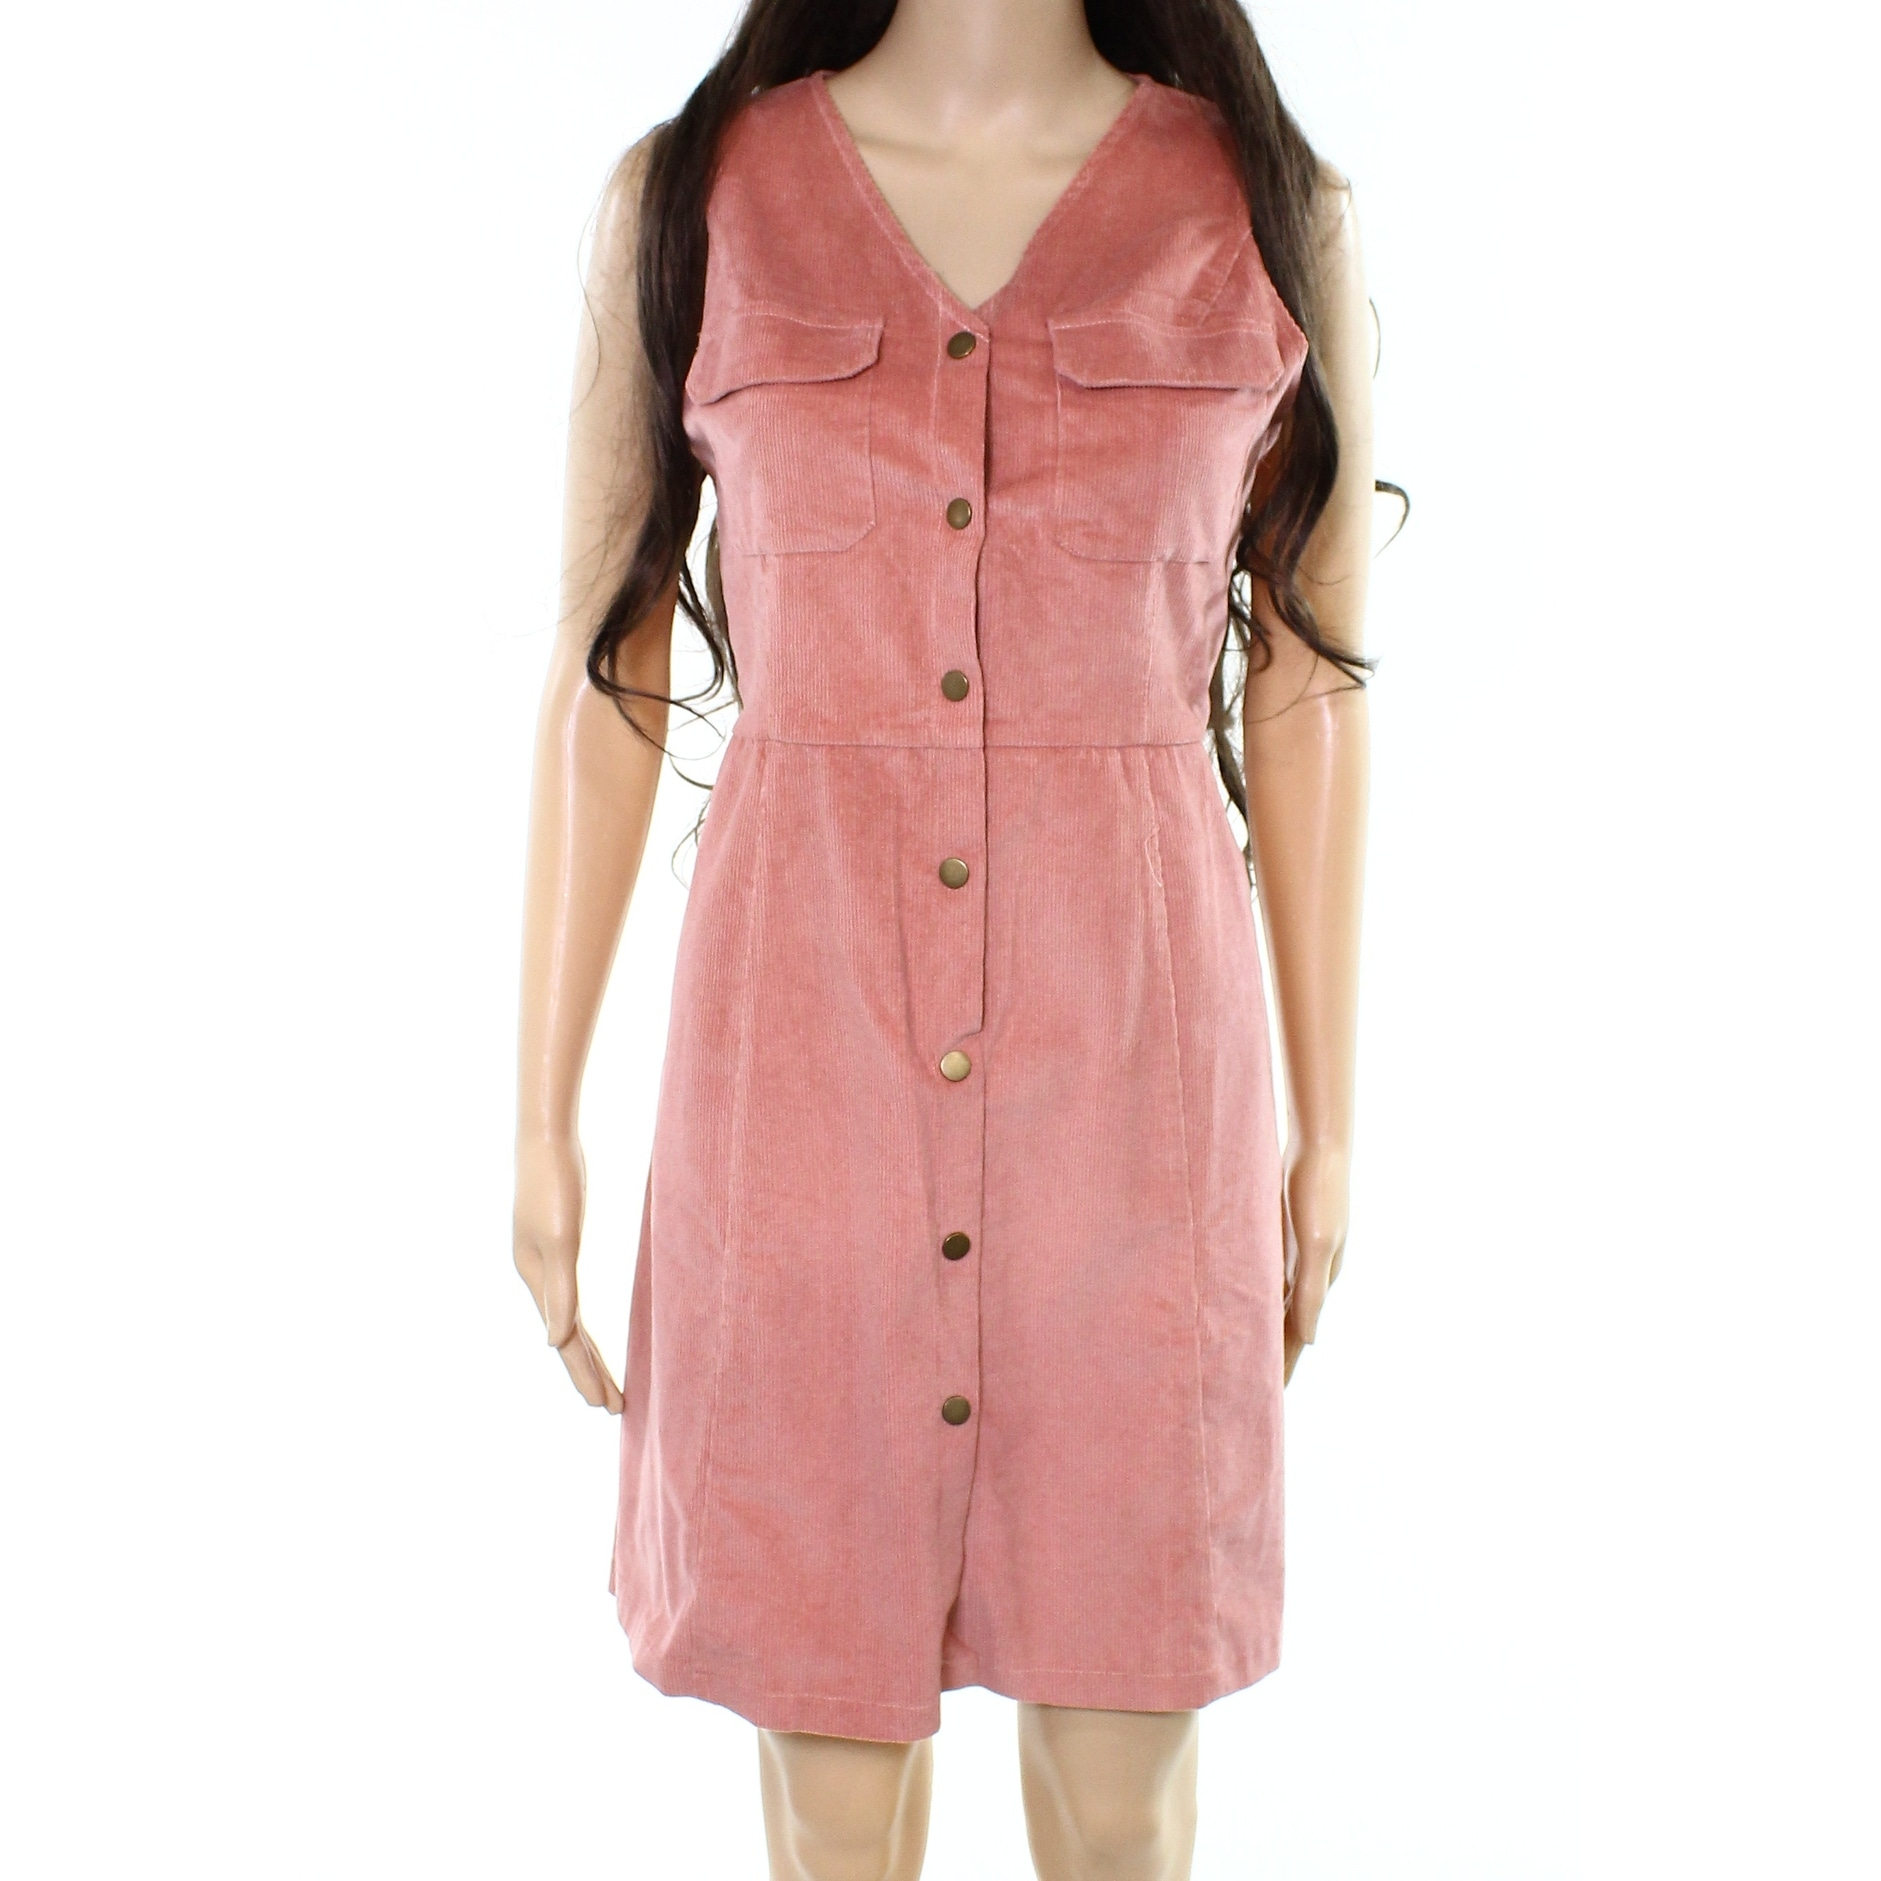 d30791e90f5 Shop Alice   You Womens Plus Corduroy V-Neck Sheath Dress - Free Shipping  On Orders Over  45 - Overstock - 22528707